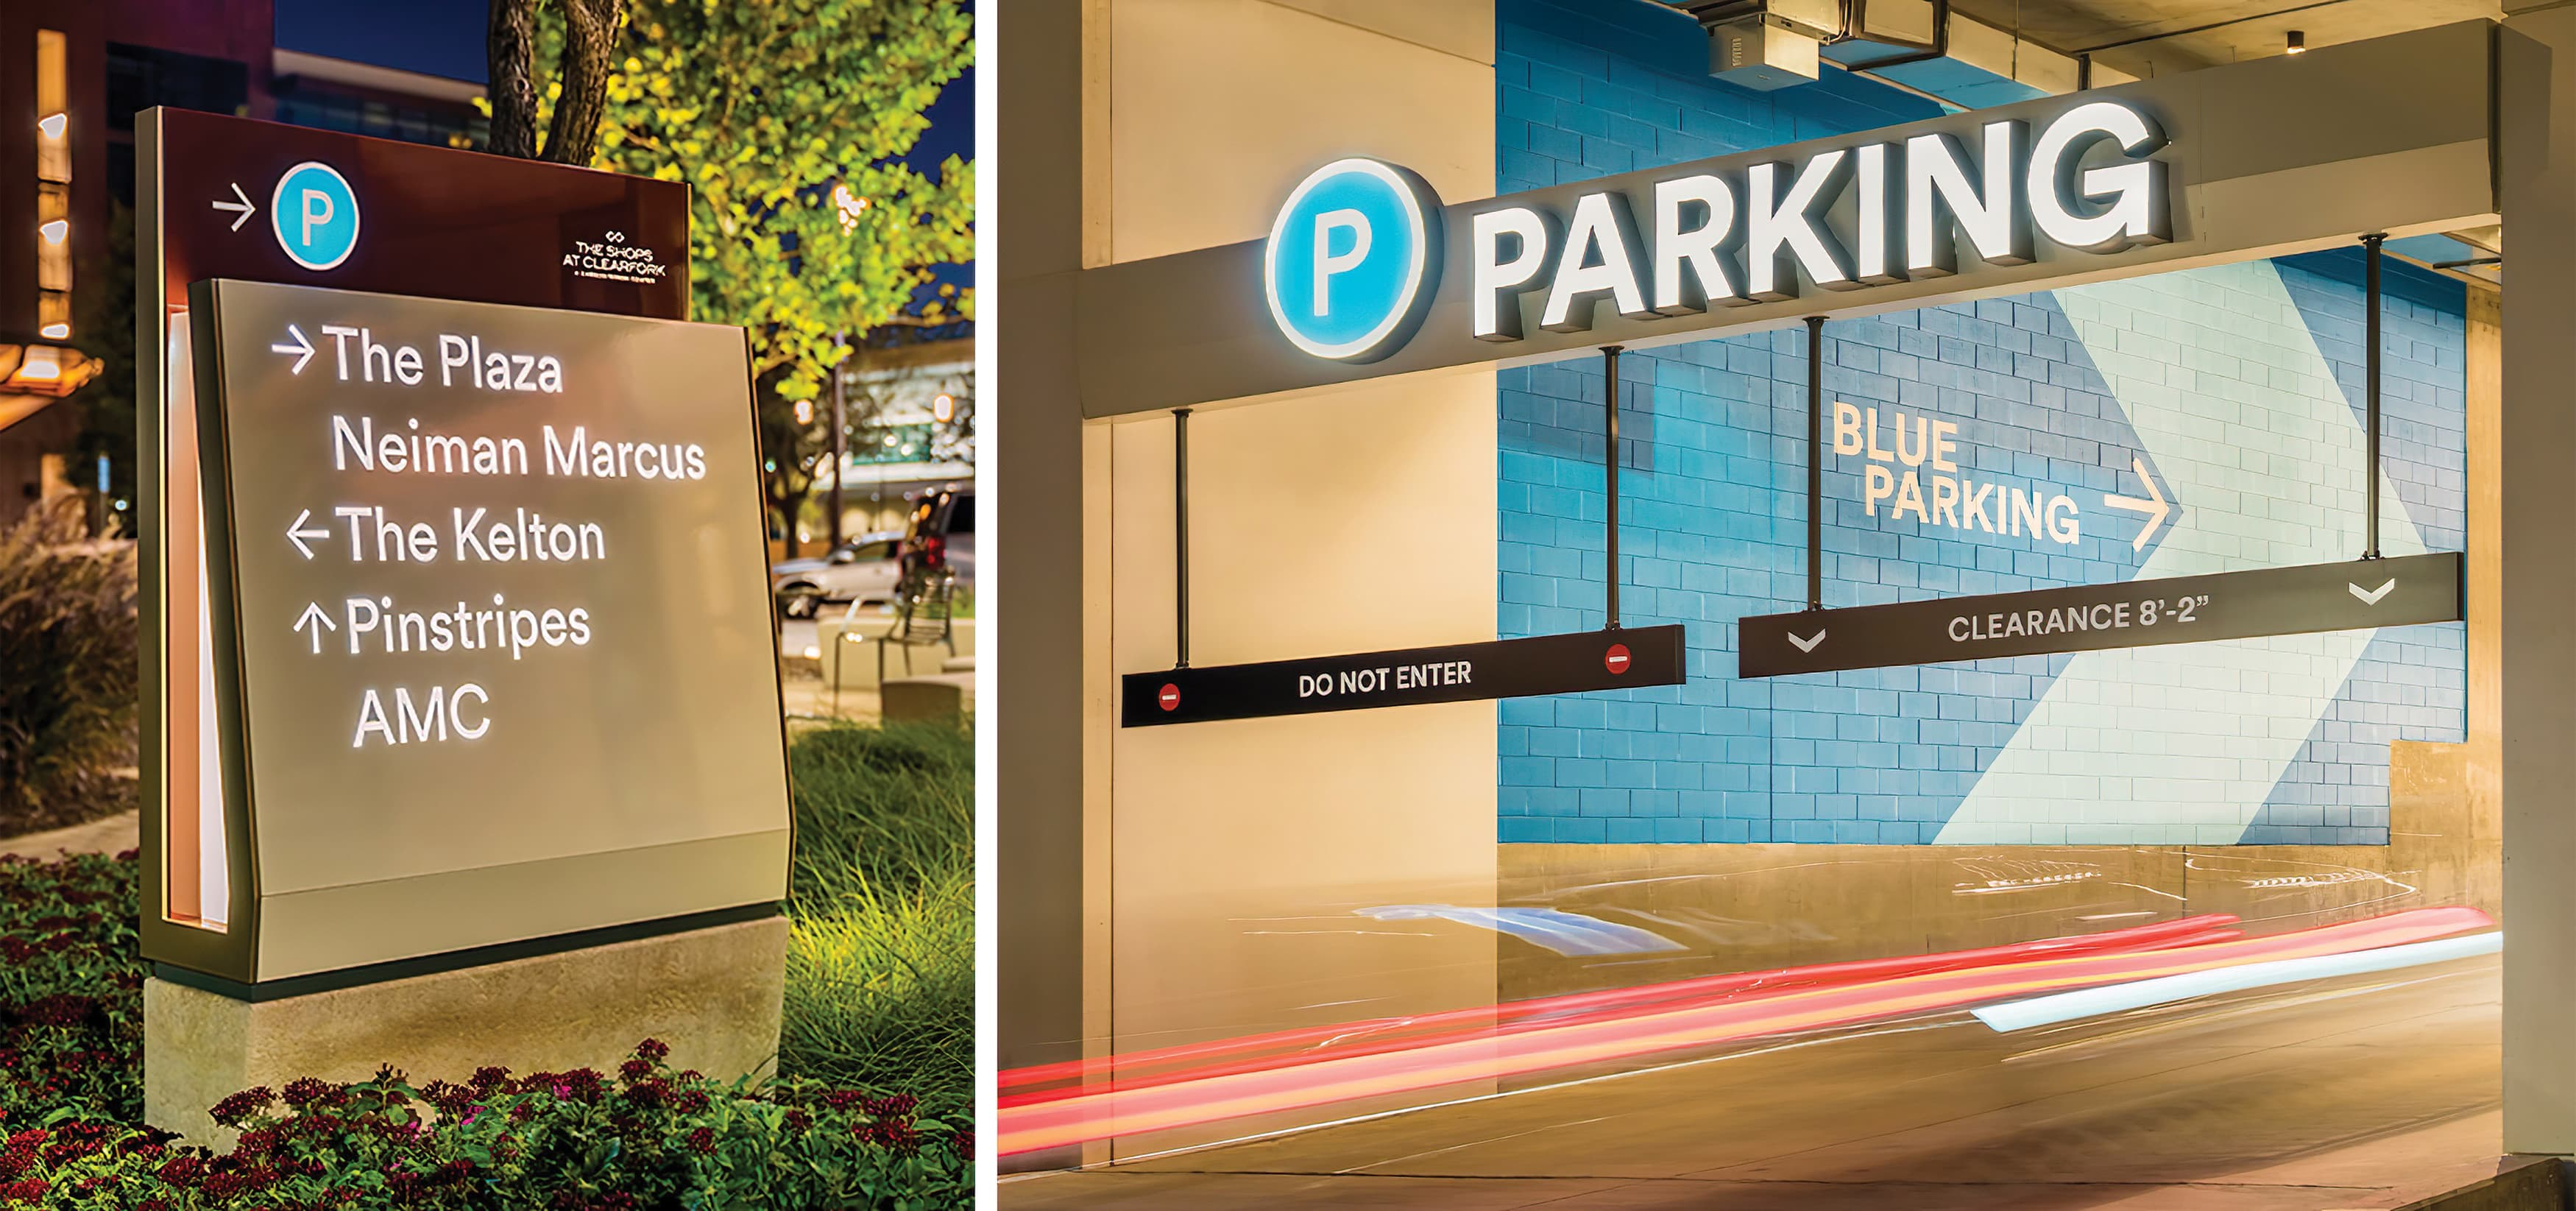 The Shops at Clearfork is an upscale, mixed-use development in the heart of Fort Worth. Vehicular wayfinding design and parking garage signage.